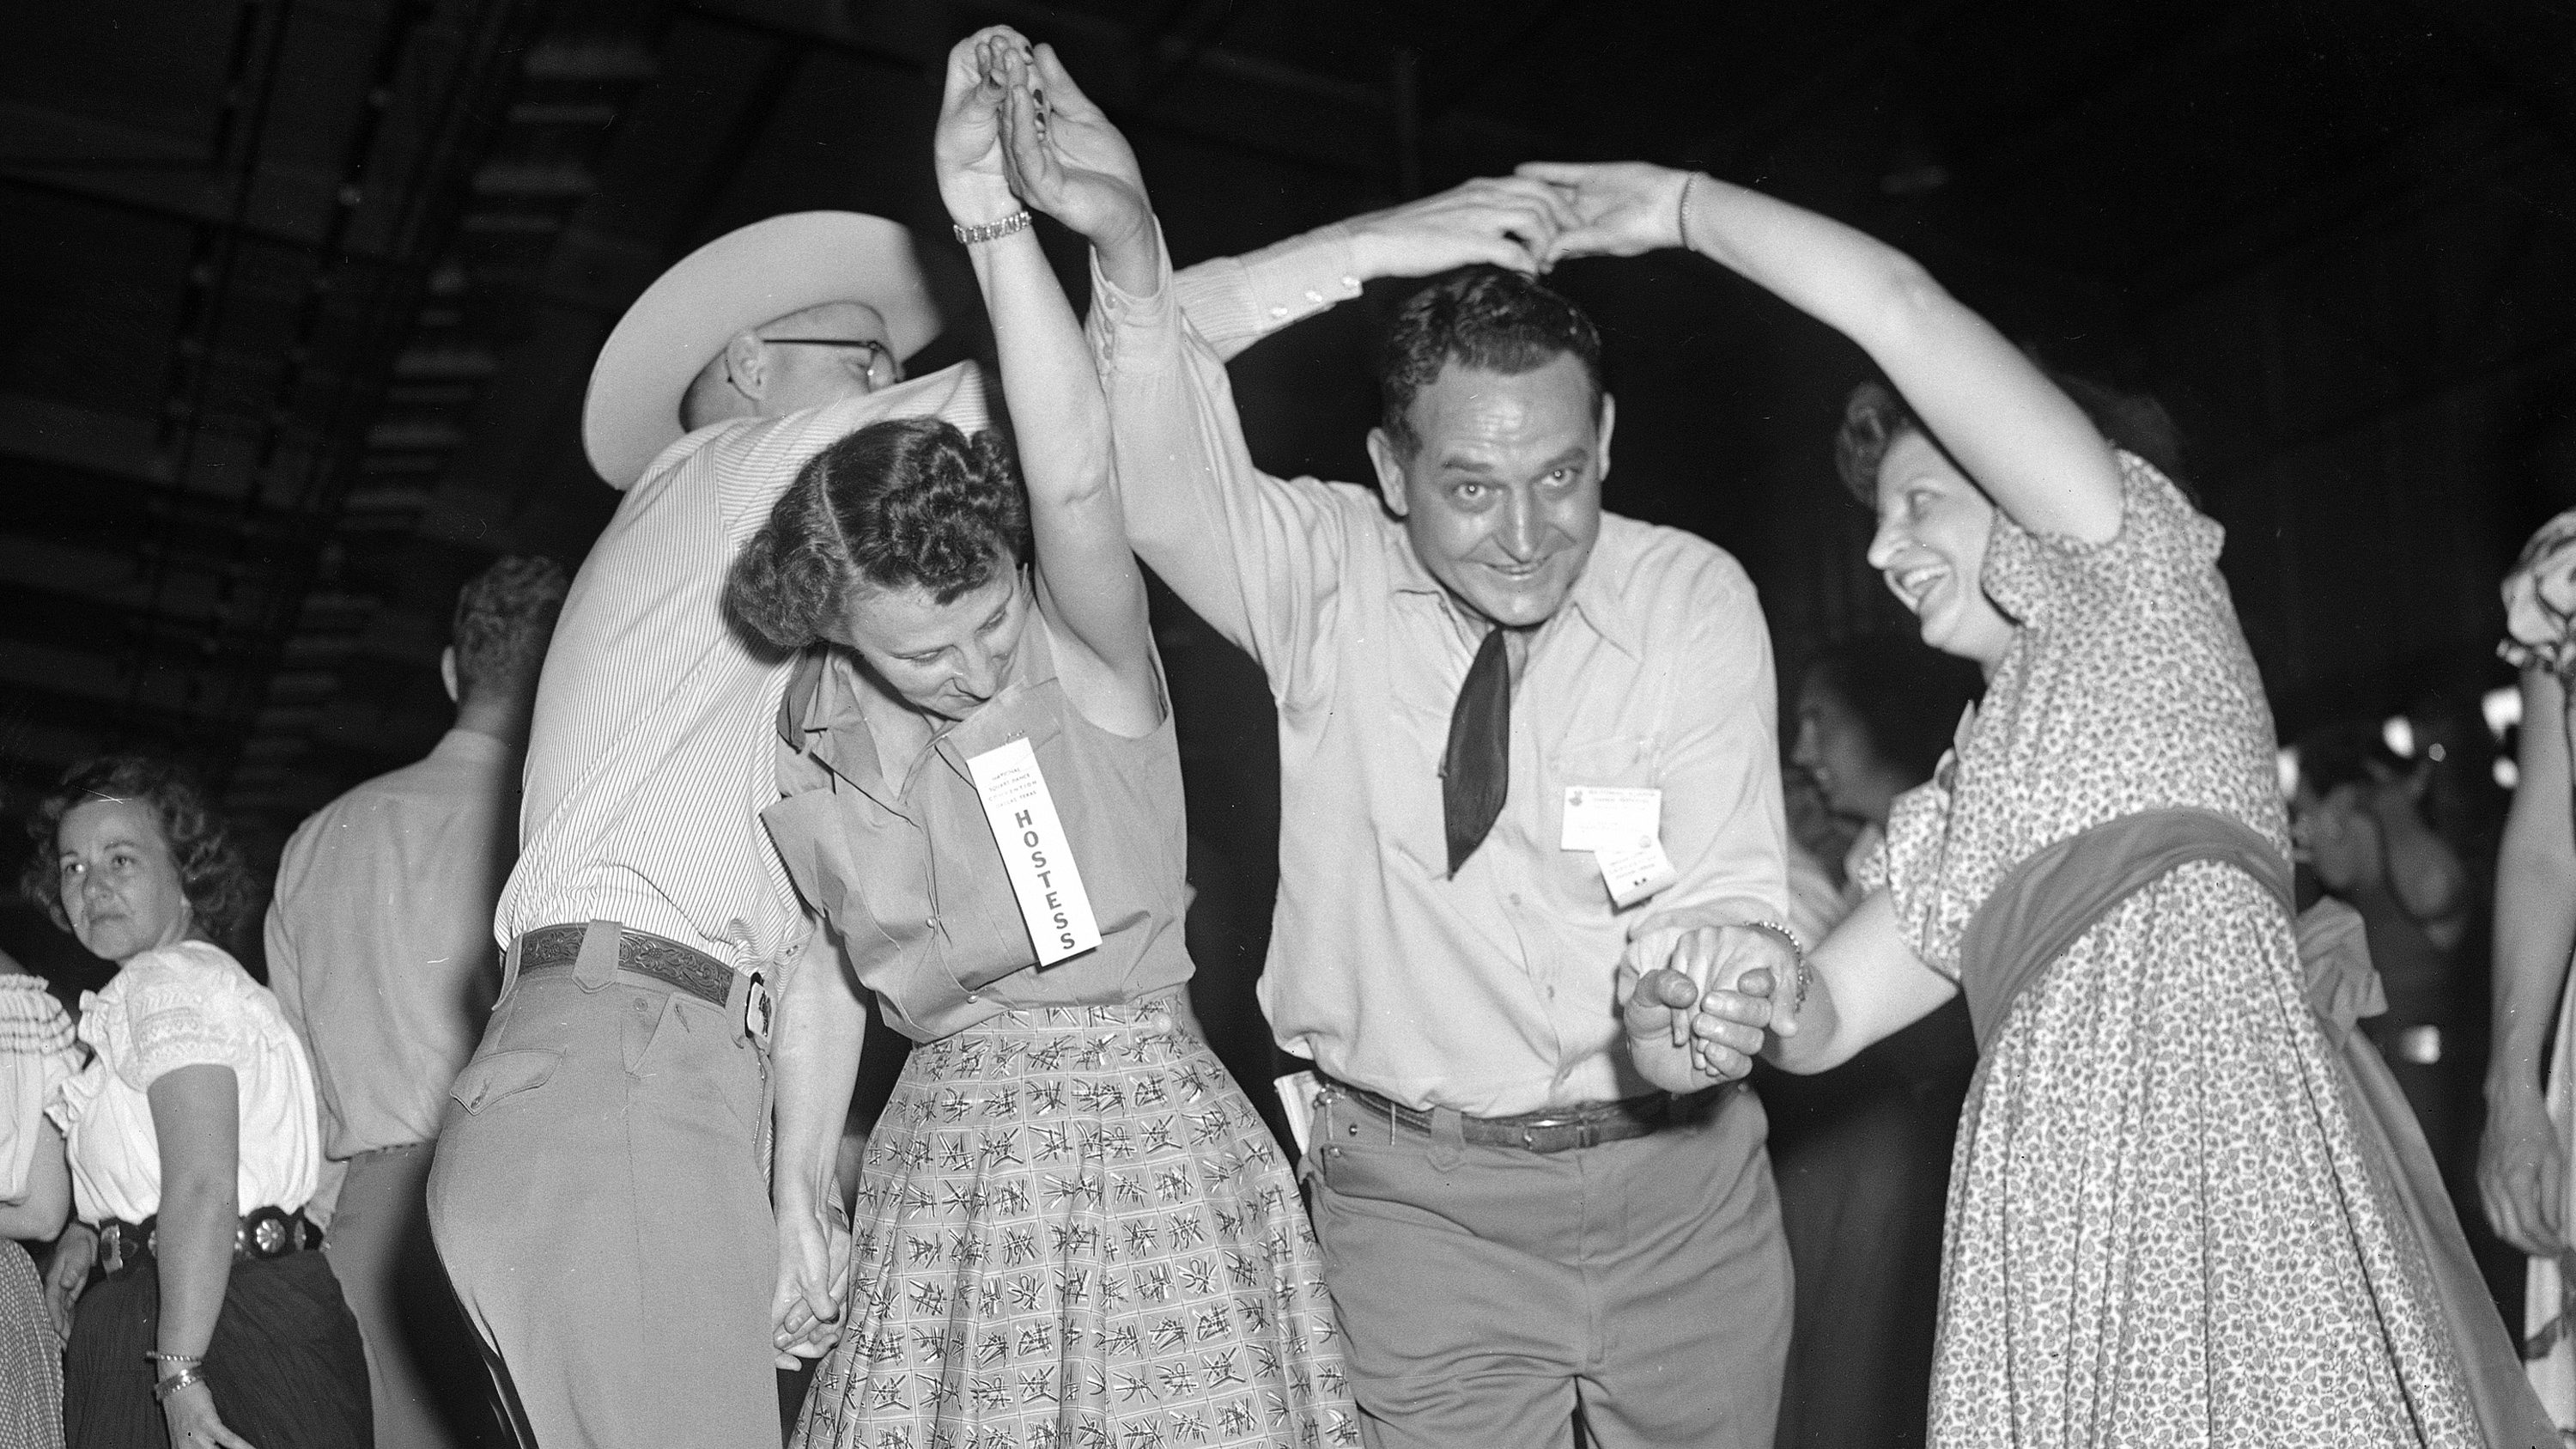 b1fd1f51d0c7 America's wholesome square dancing tradition is a tool of white ...